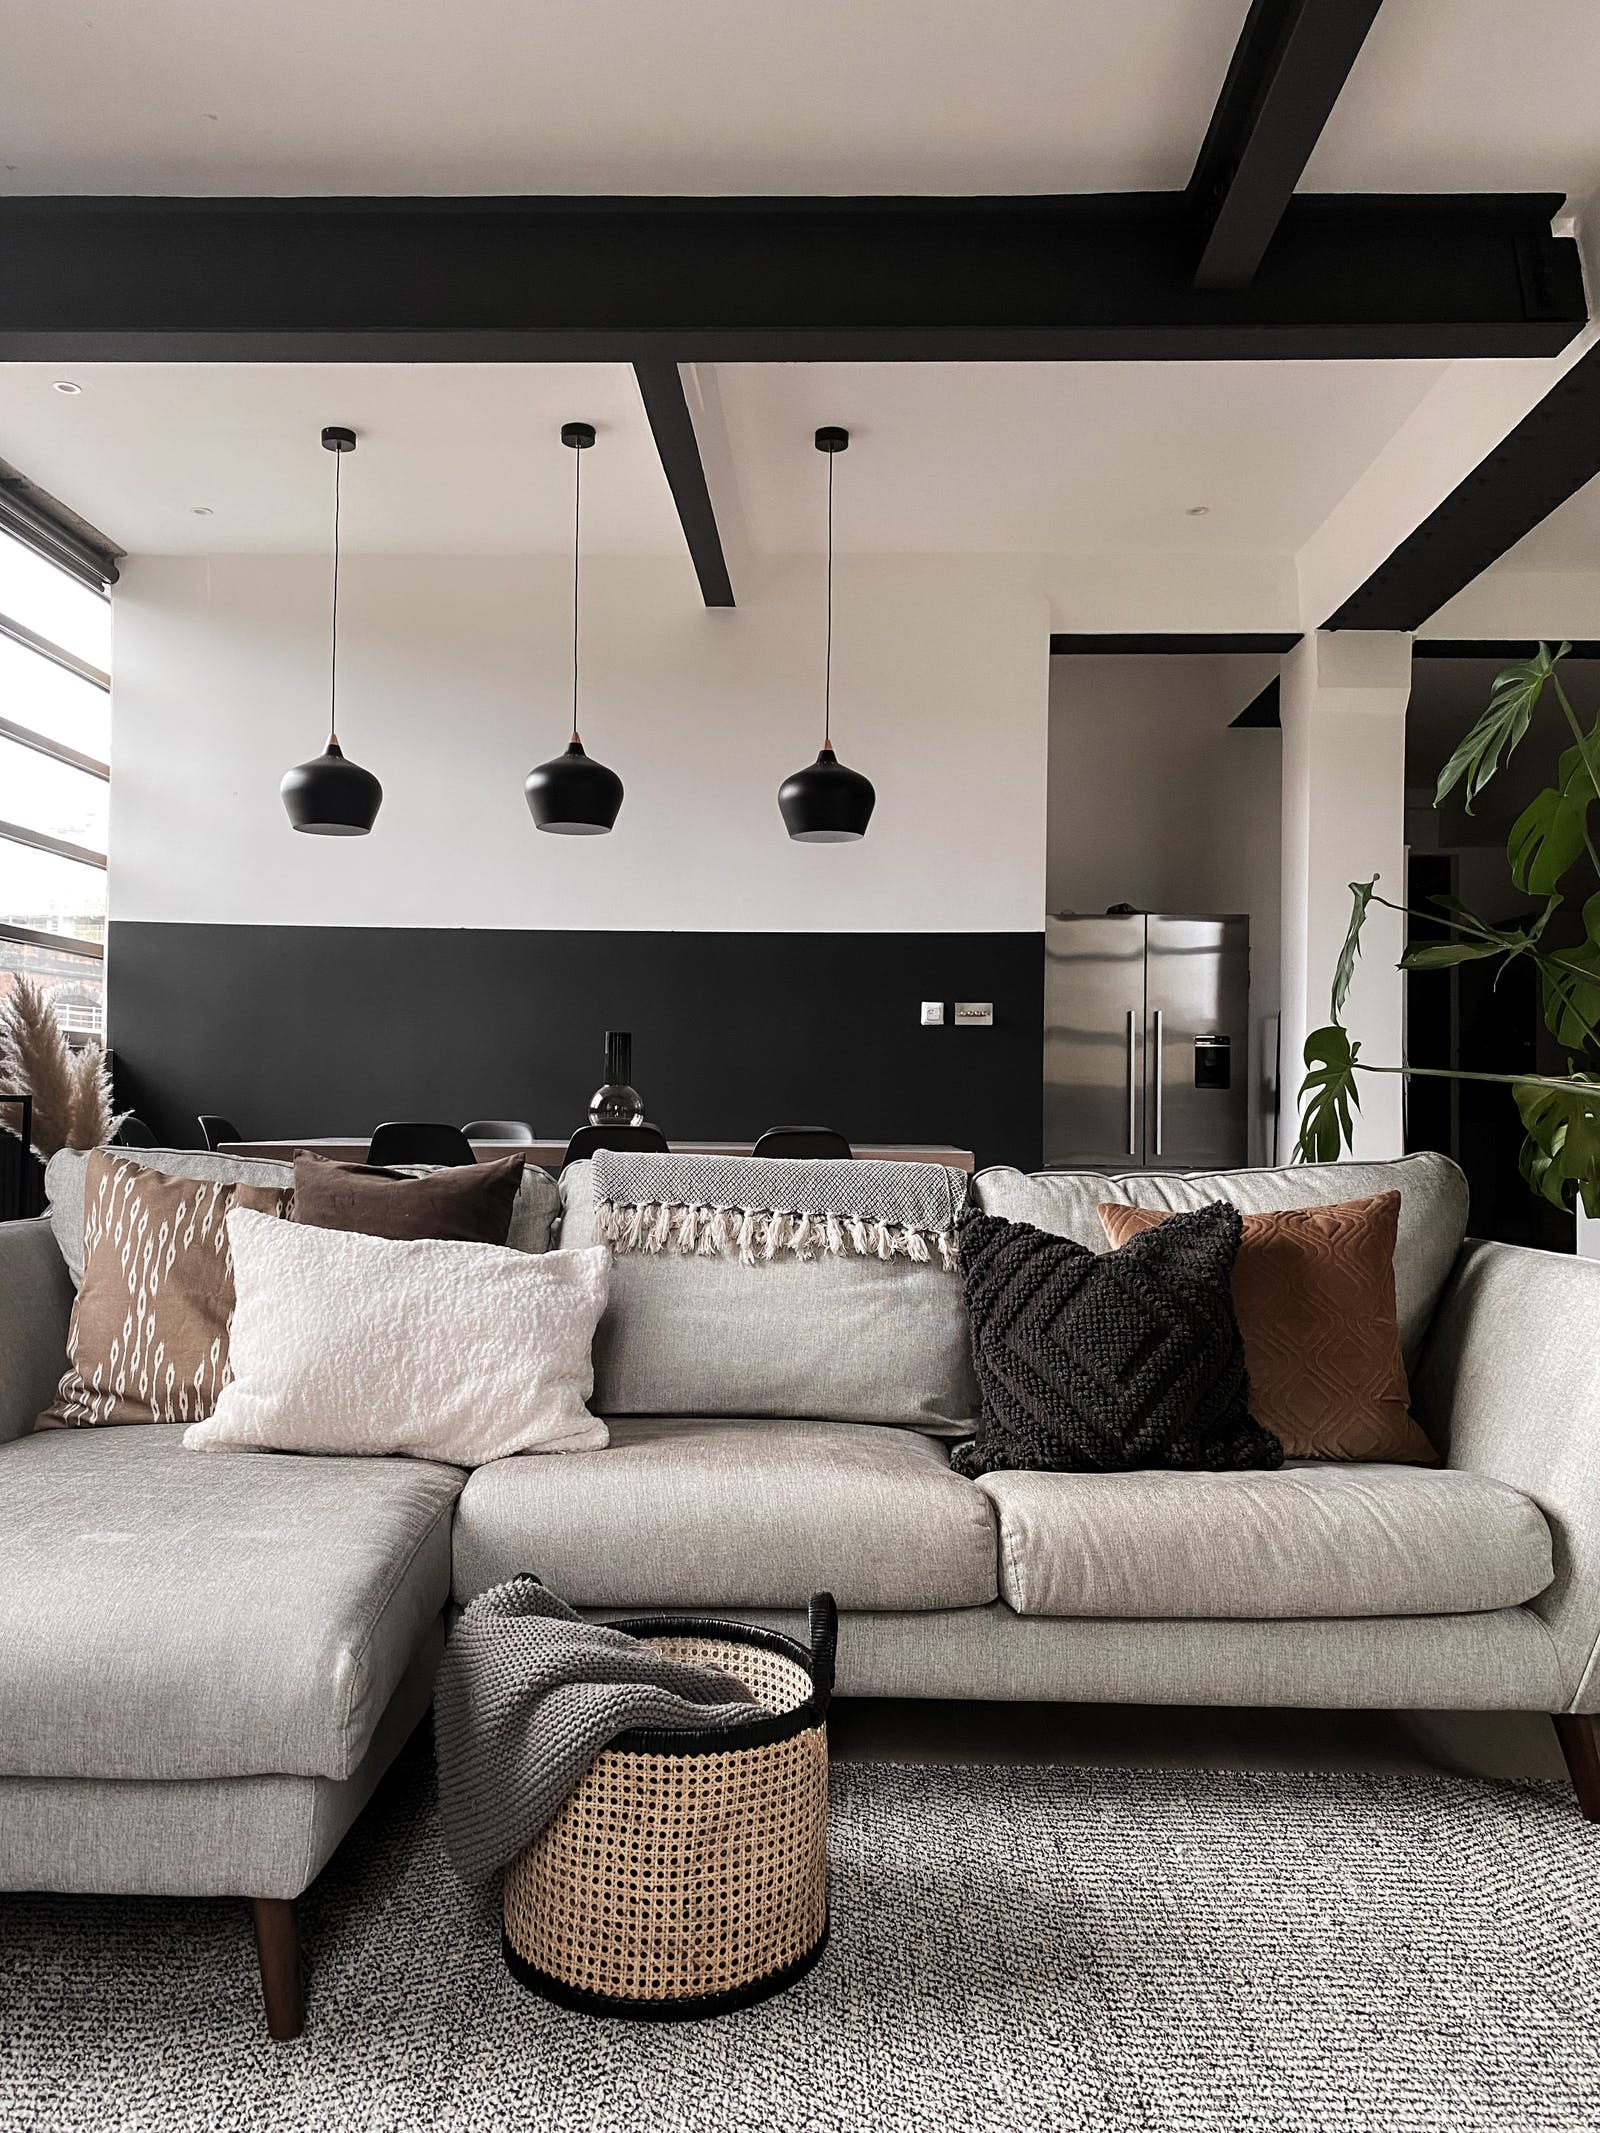 Living room with a grey sofa and an open plan dining area behind it